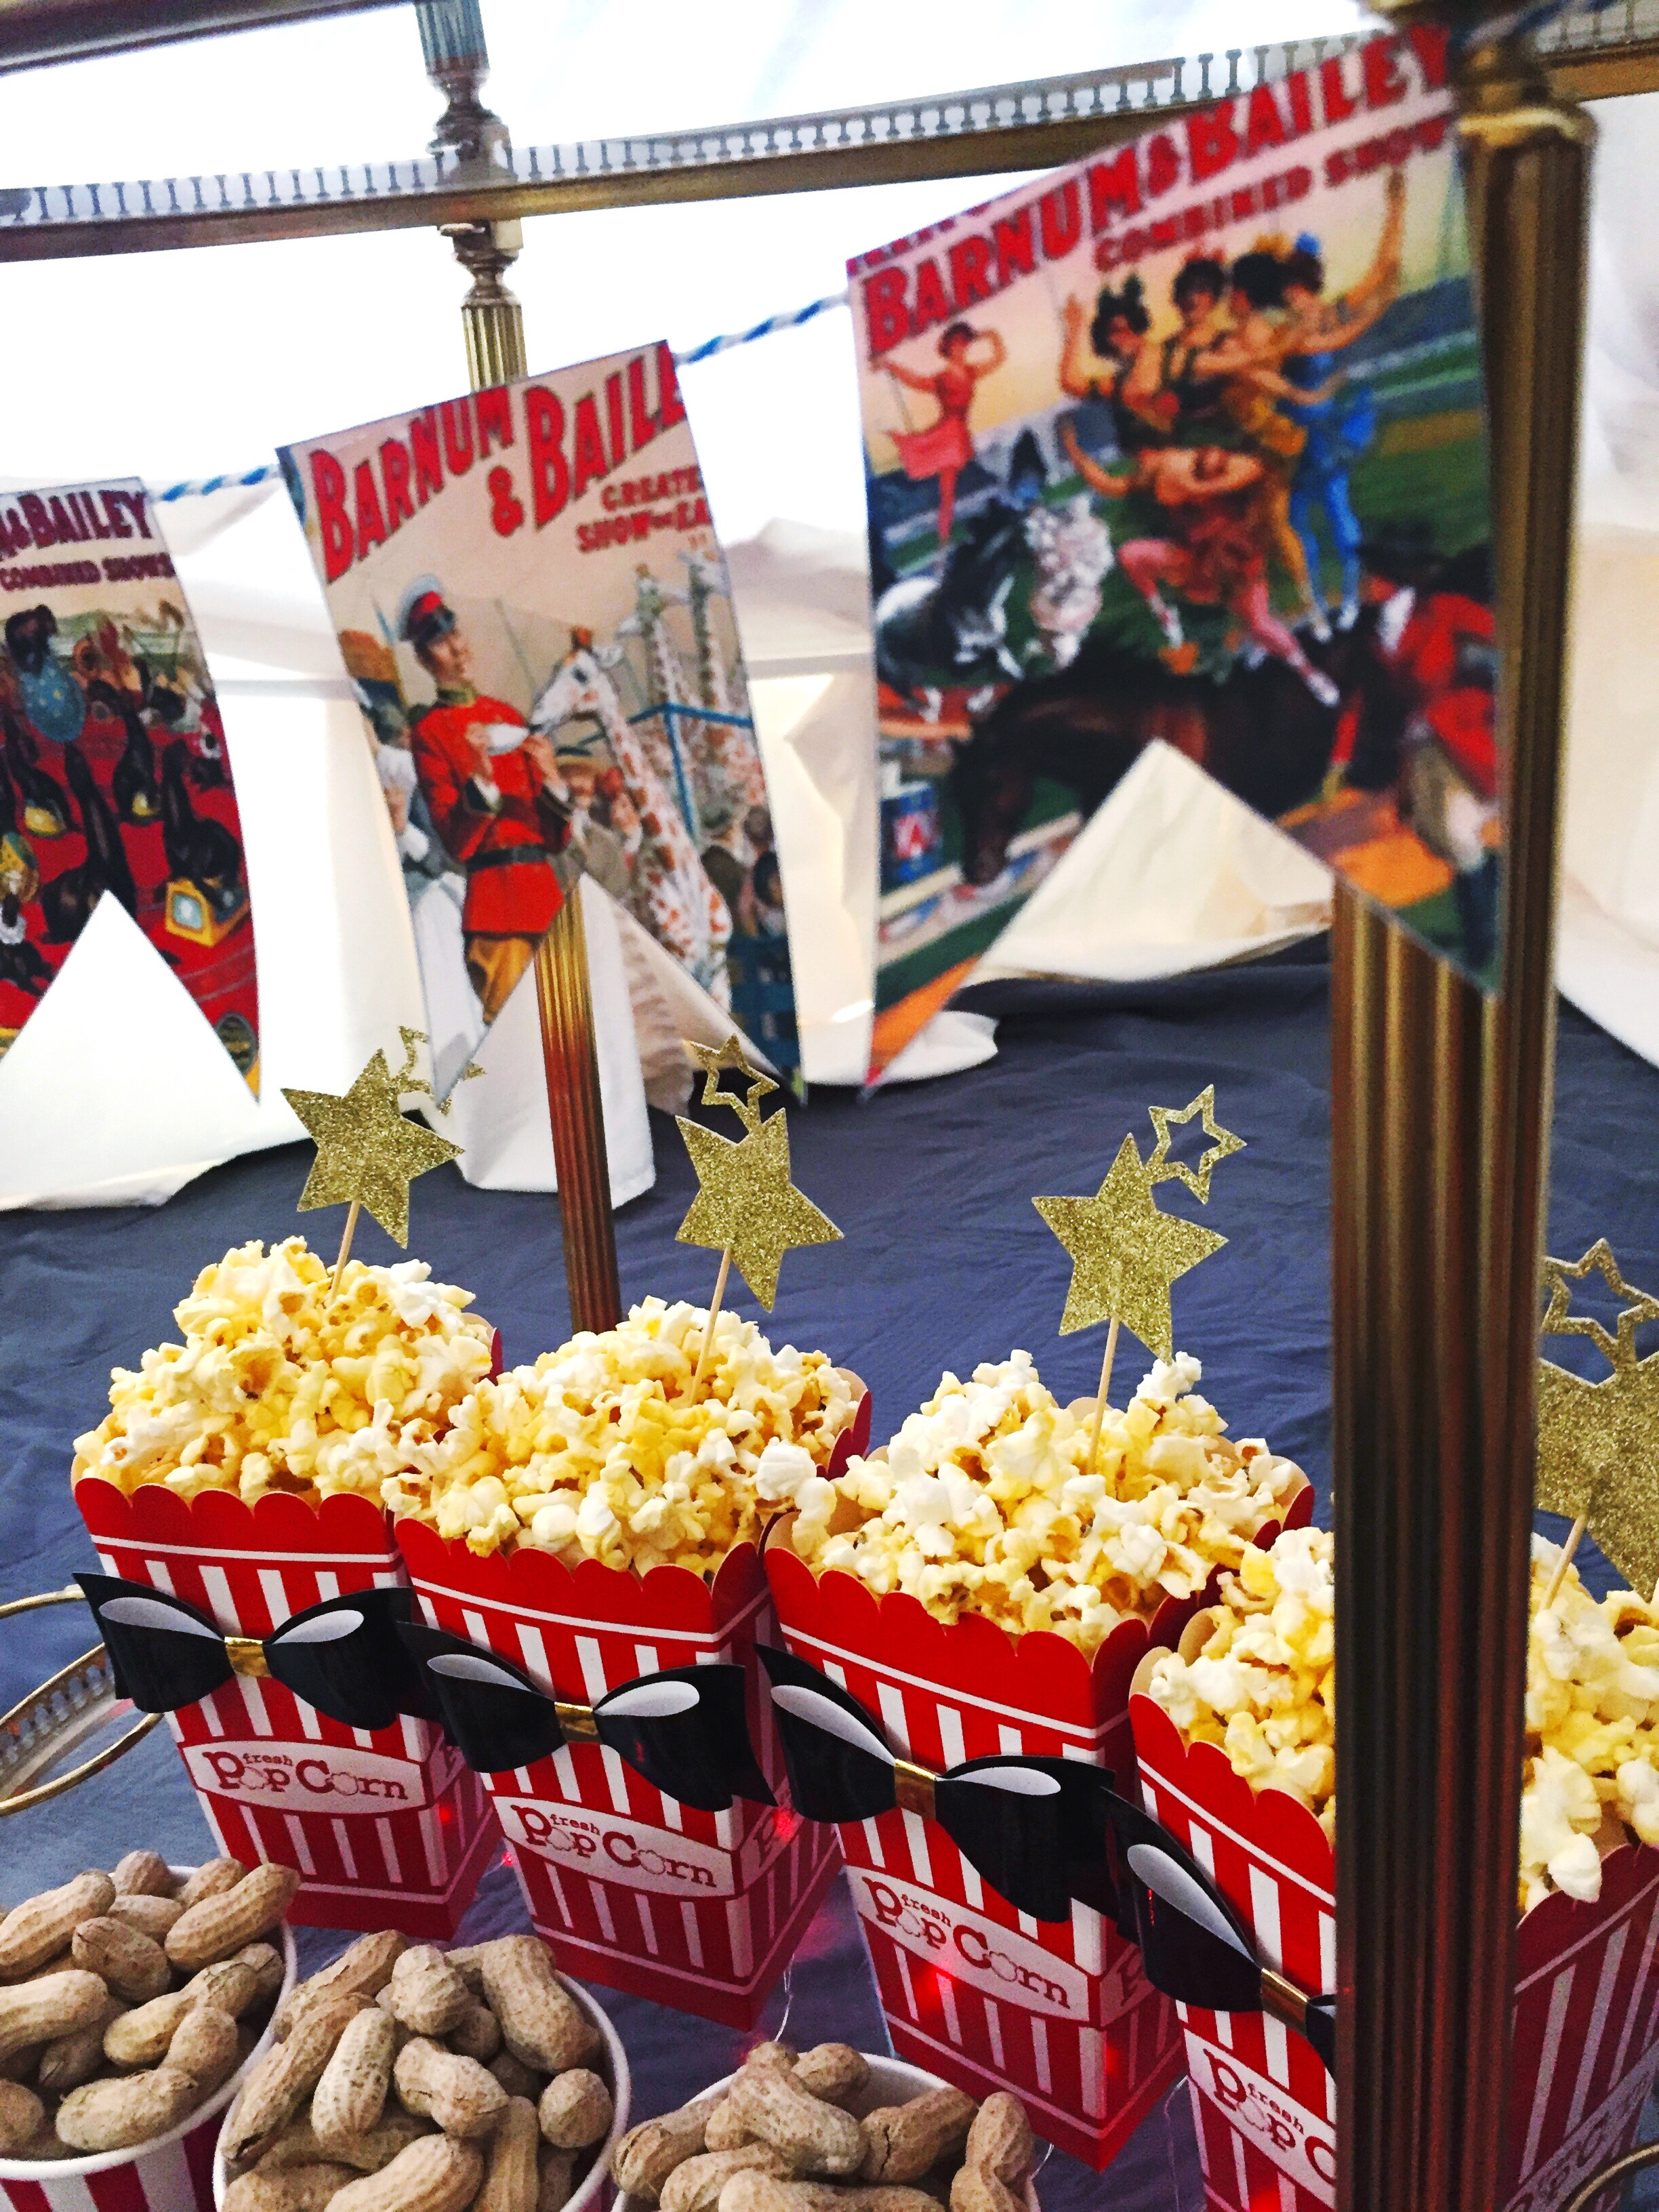 The Greatest Showman Movie Party_Popcorn_Banners_Bar Cart_Food Ideas_Circus Tent.JPG